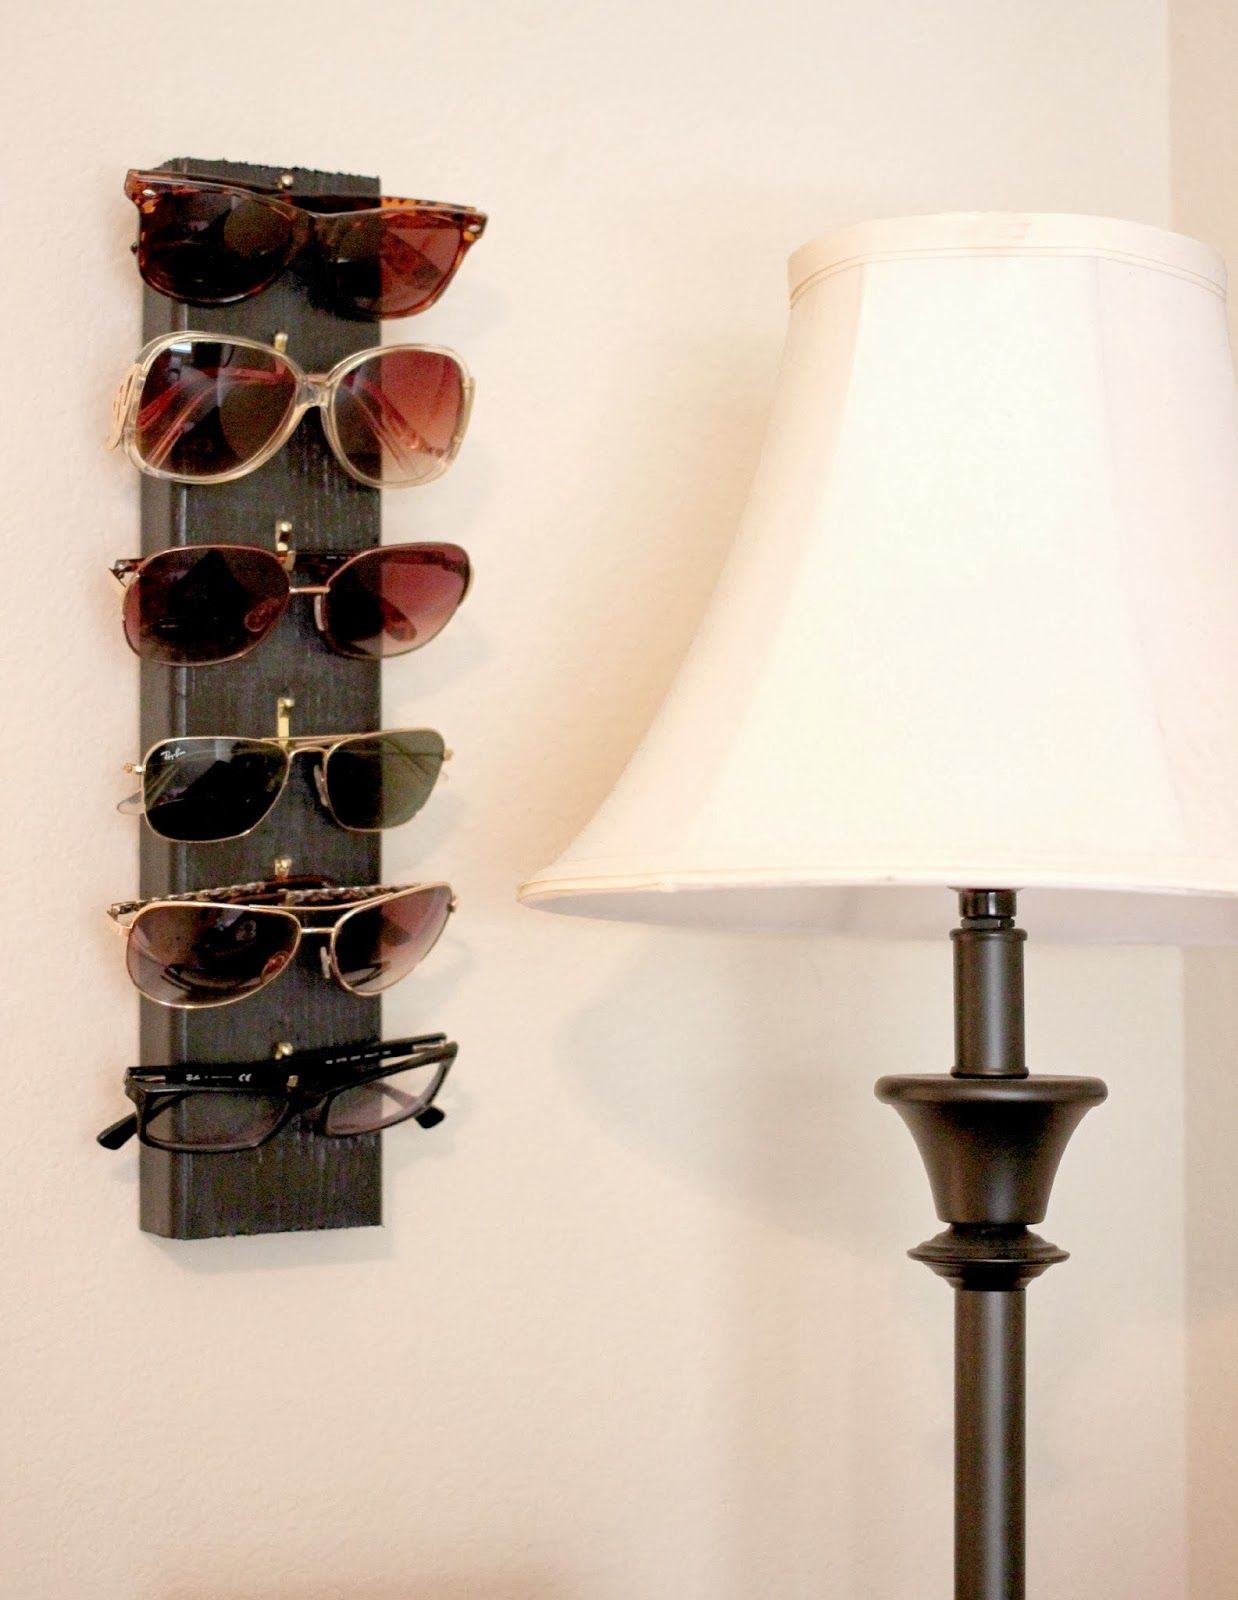 Merveilleux An Easy Diy Project To Hang All Your Sunglasses You Just Need Some Picture  Hangers And A Piece Of Wood!